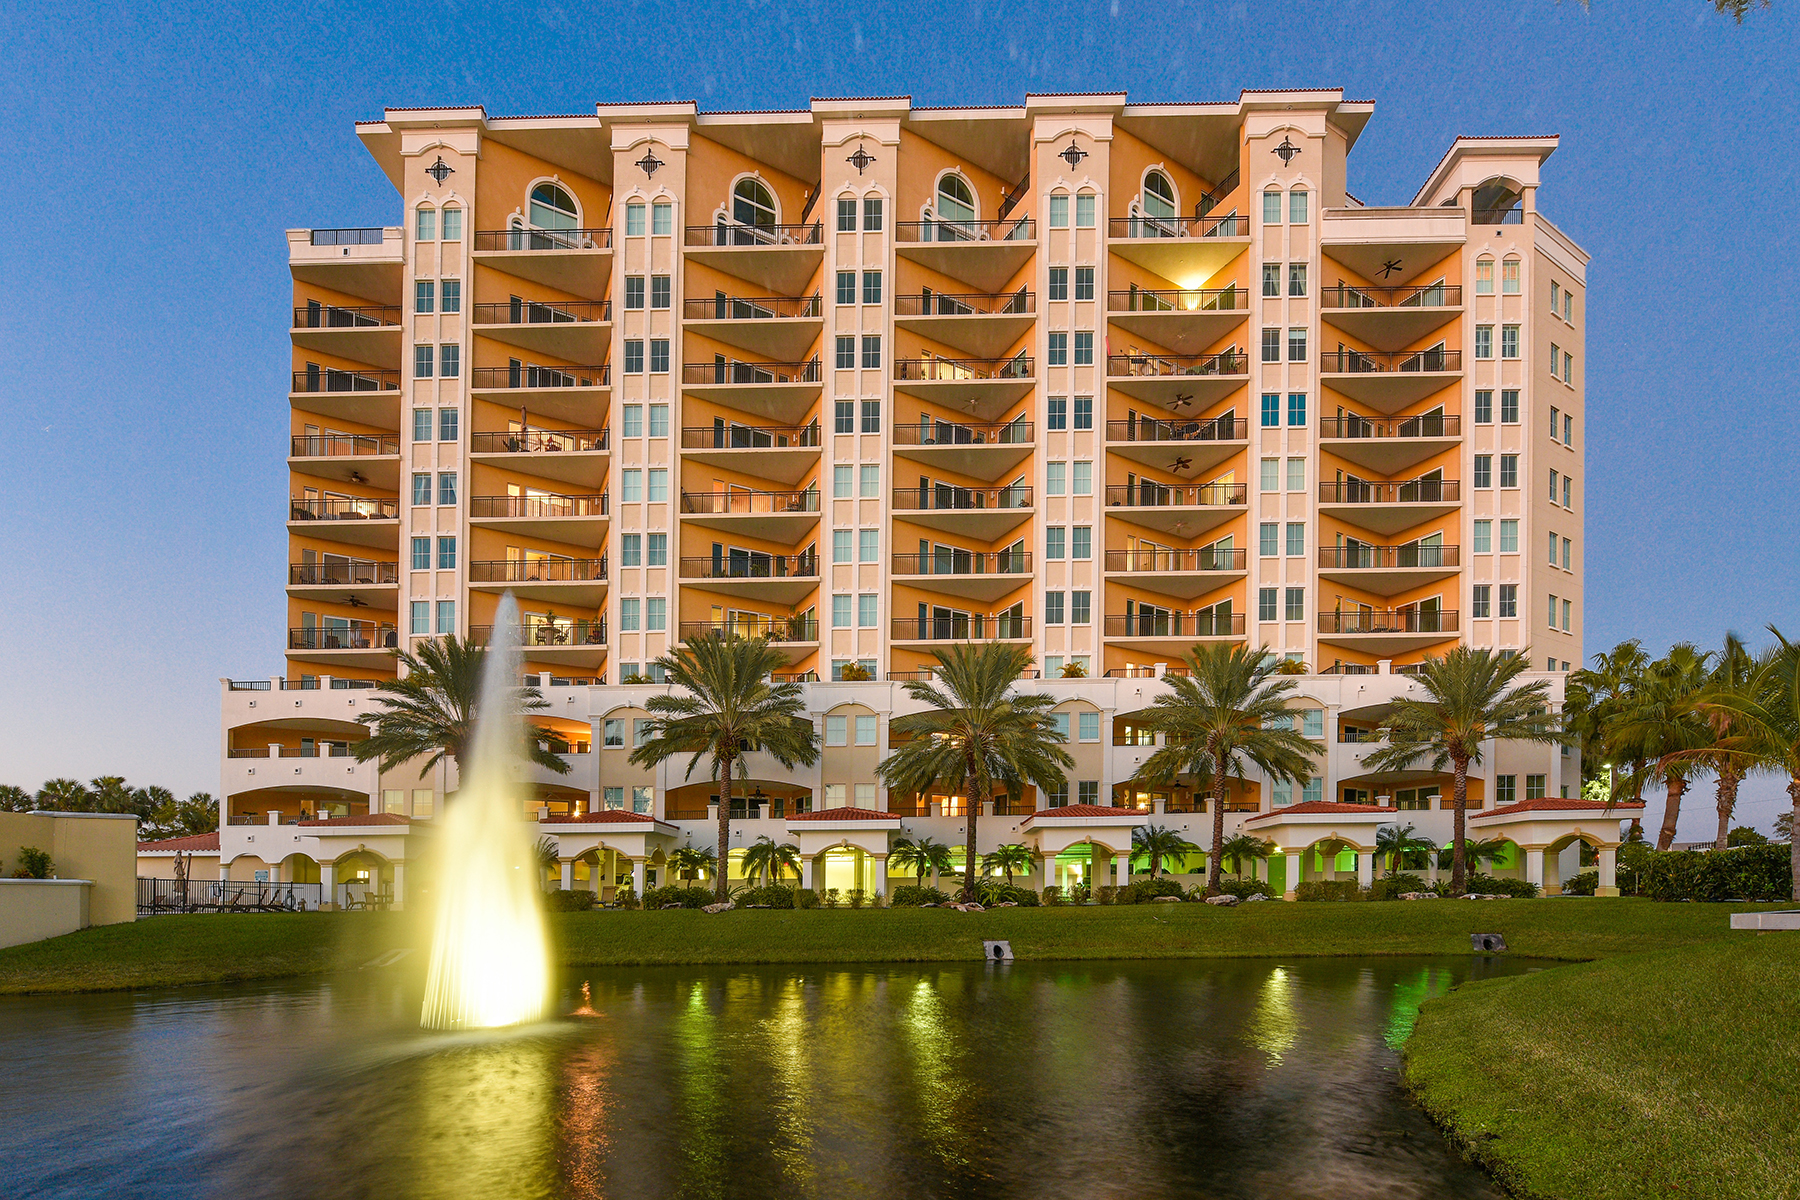 Condomínio para Venda às THE PALMS AT RIVIERA DUNES 501 Haben Blvd 906 Palmetto, Florida, 34221 Estados Unidos